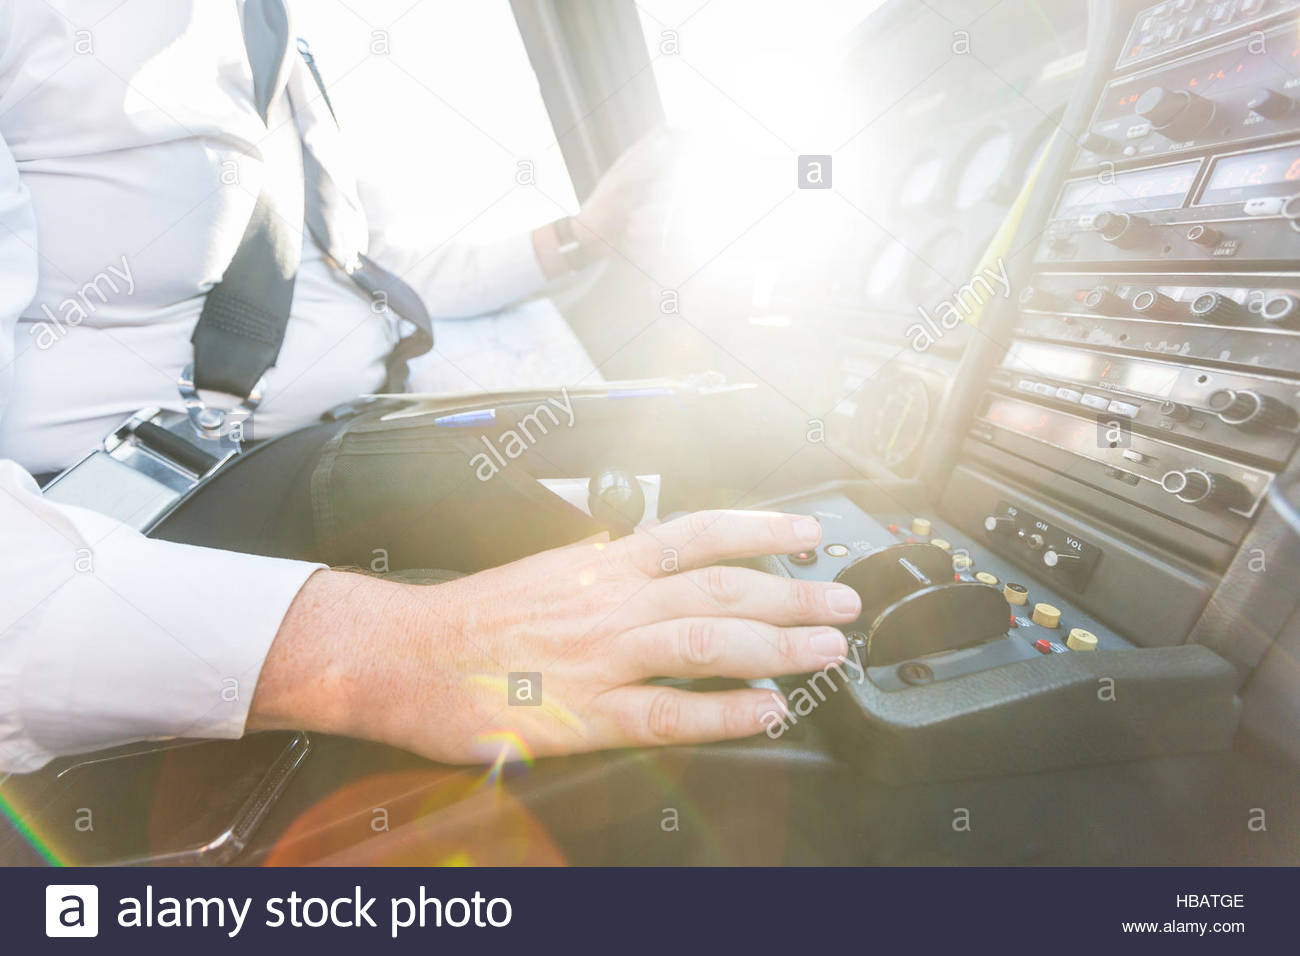 Pilot in cockpit of aircraft - Stock Image